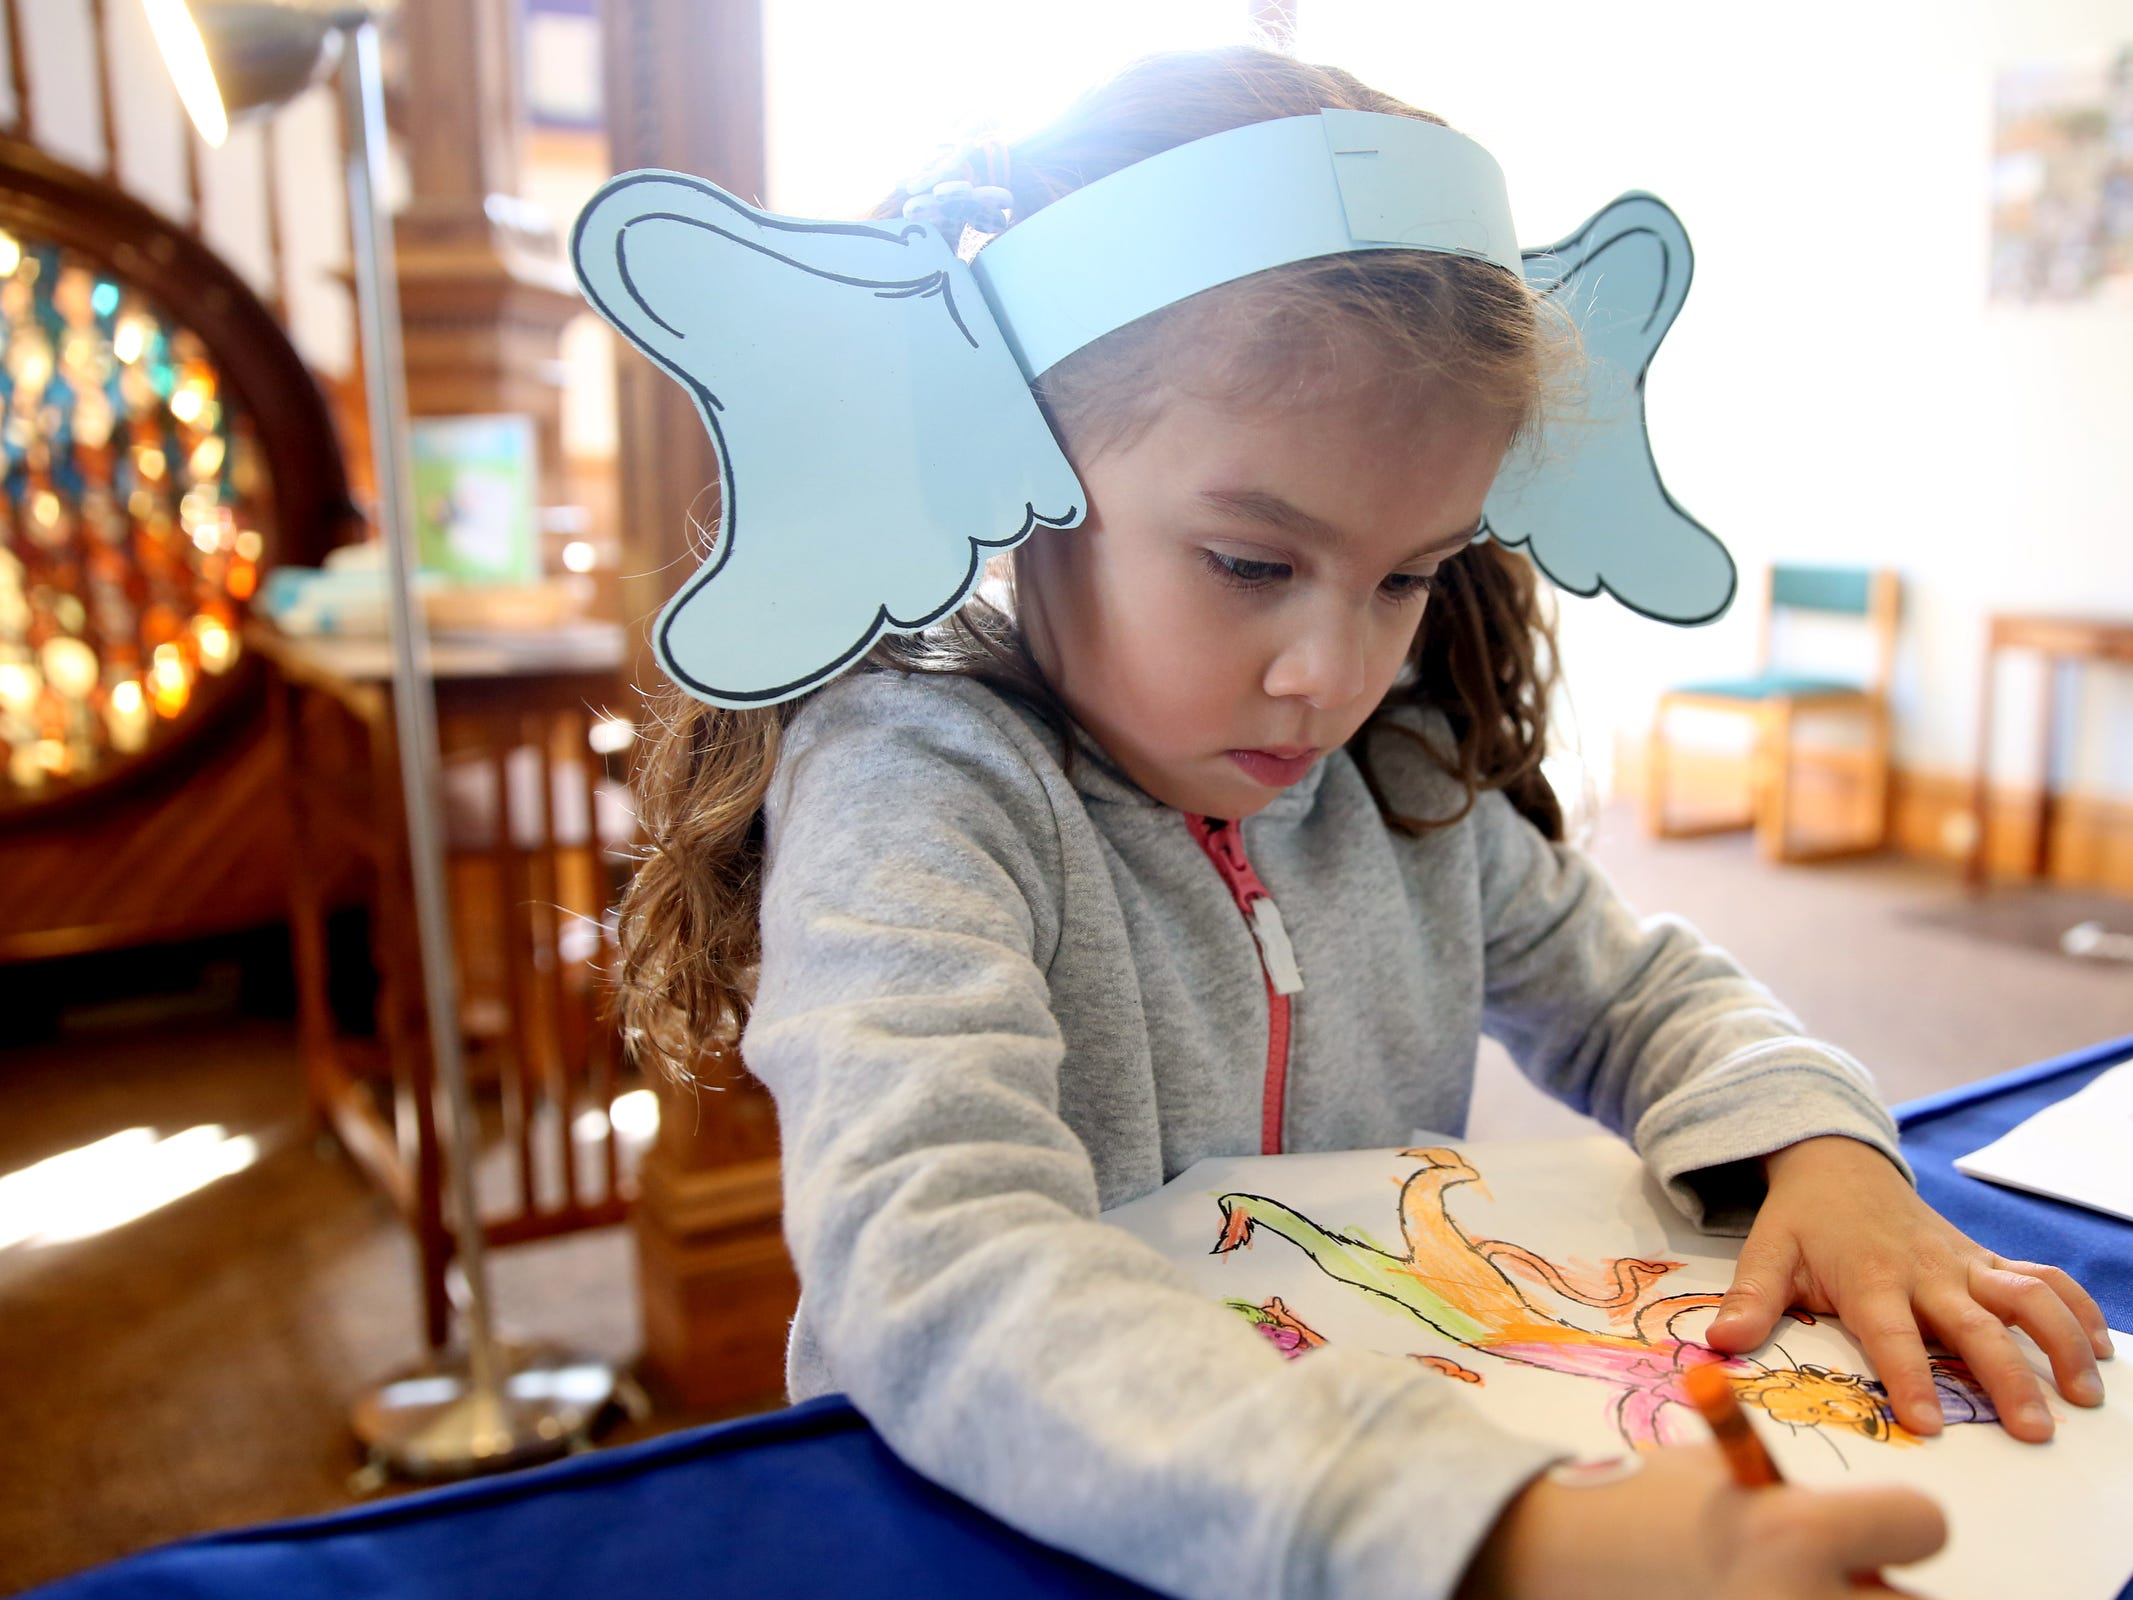 """Clara Prickett, 4, of Salem, wears ears like Horton from """"Horton Hears a Who"""" and colors as part of a National Read Across America Day activity in honor of Dr. Seuss' birthday at Gilbert House Children's Museum in Salem  on Friday, March 1, 2019."""